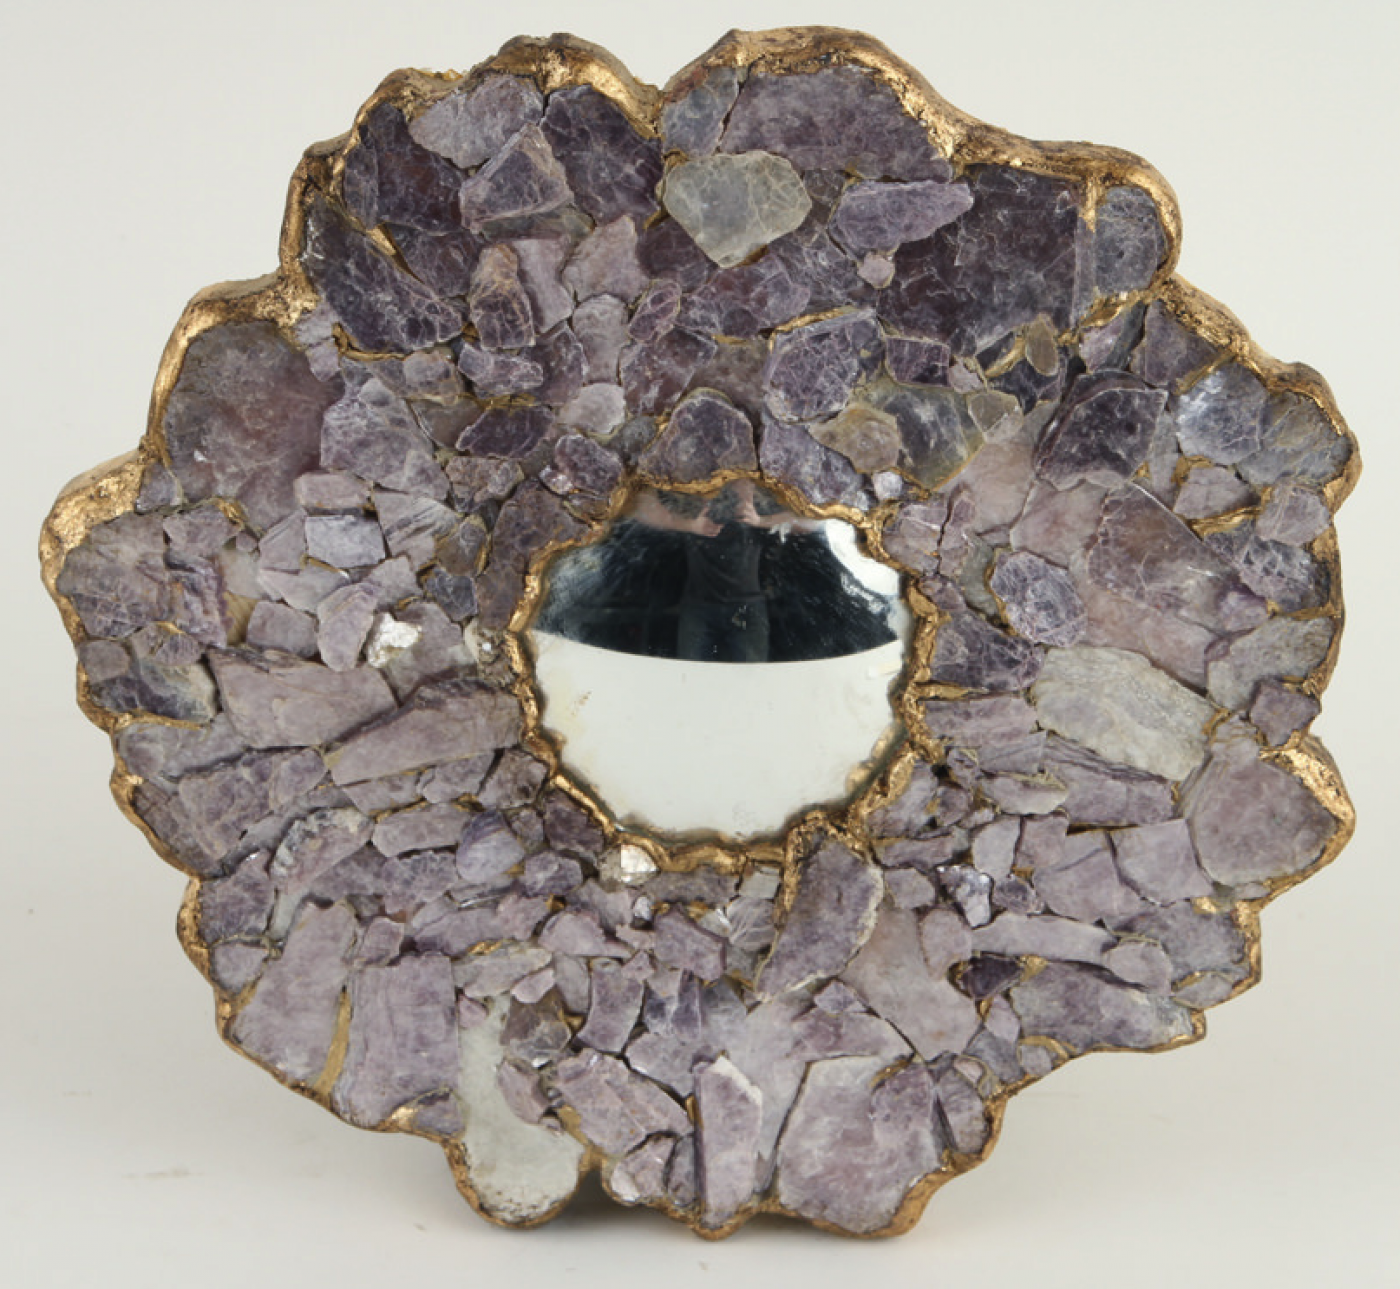 A decorative convex mirror surrounded by faceted stones.